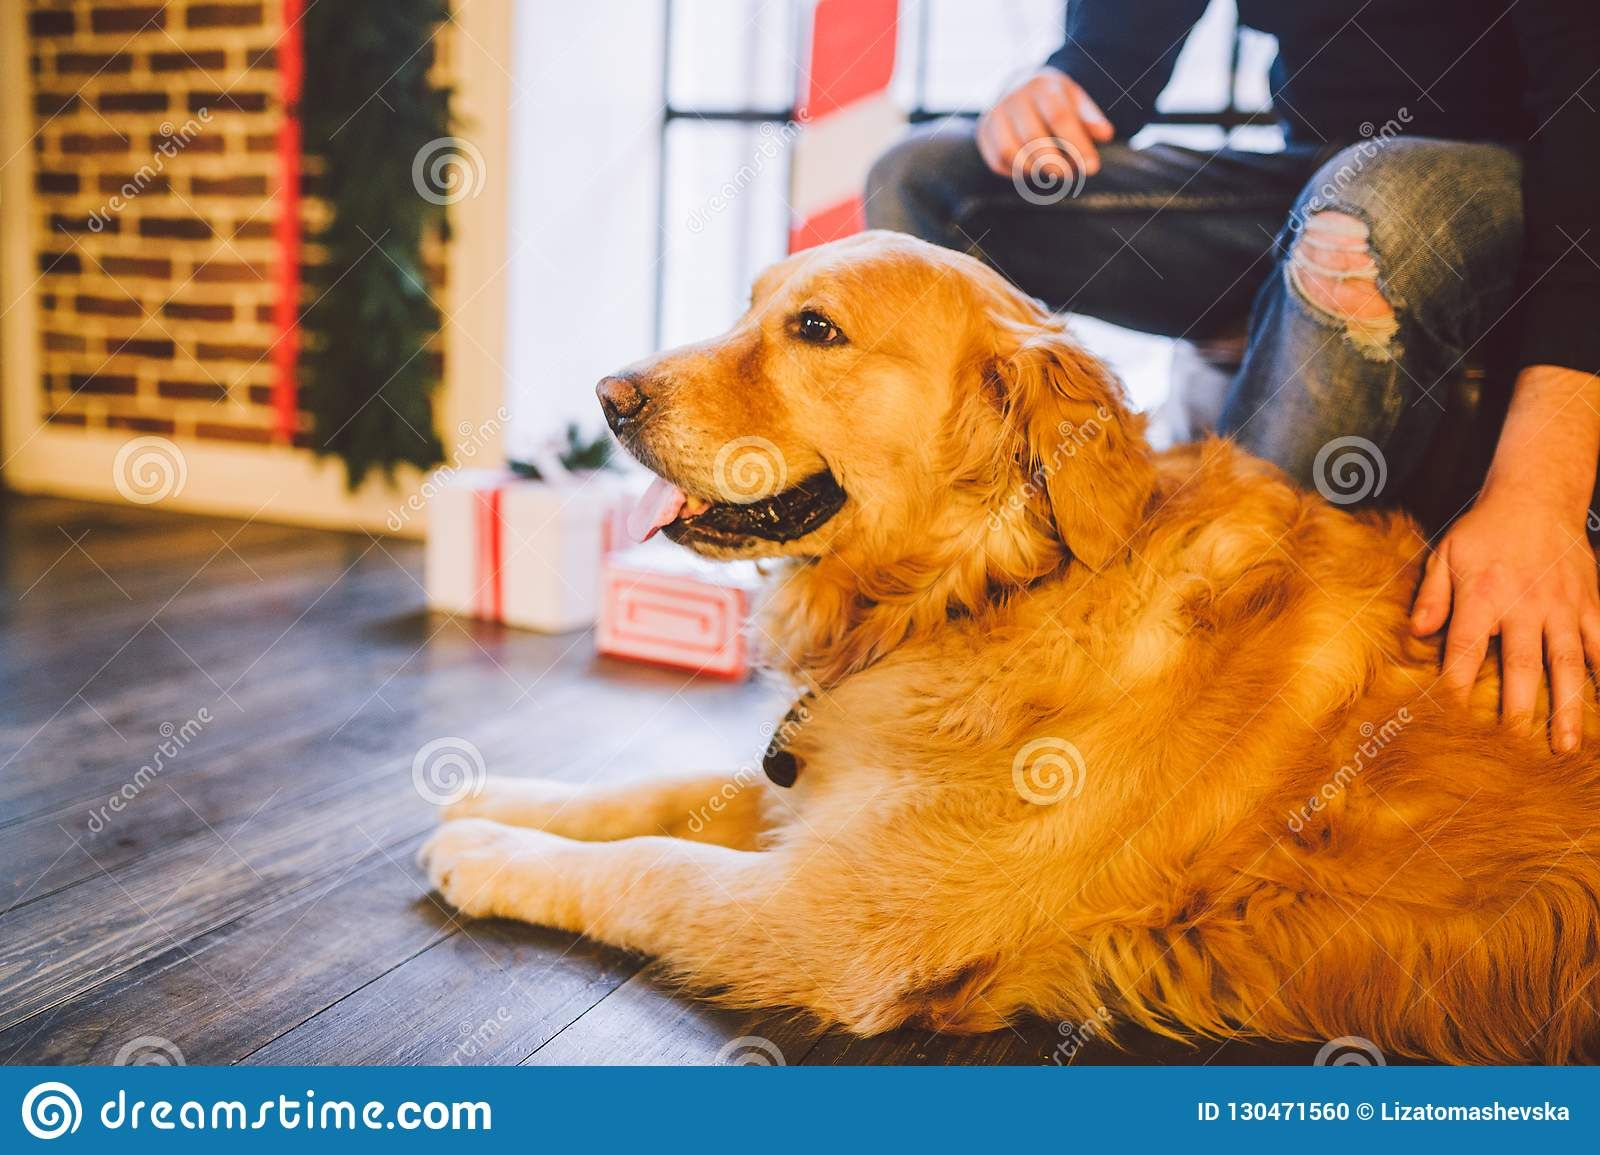 23+ Golden Retriever Dogs For Sale Near Me in 2020 Dogs